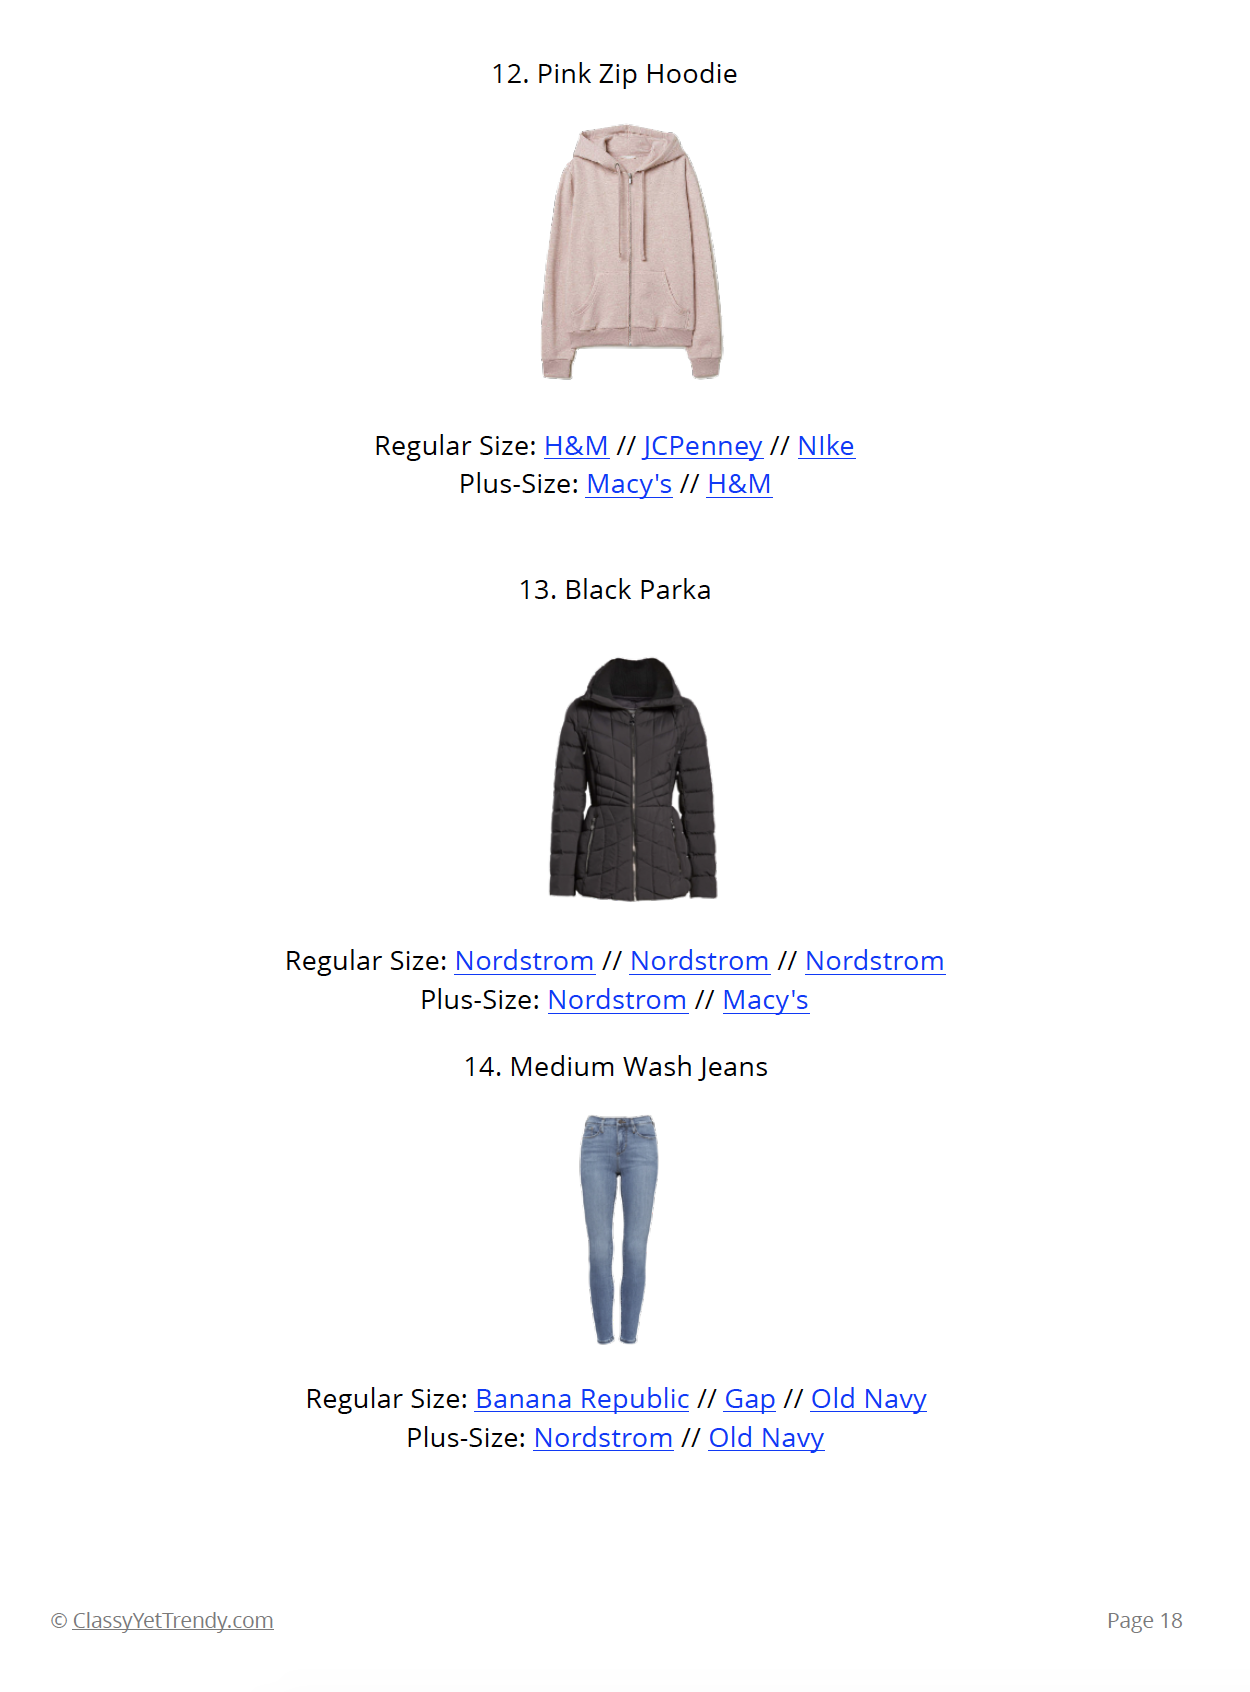 Stay At Home Mom Capsule Wardrobe - page 18